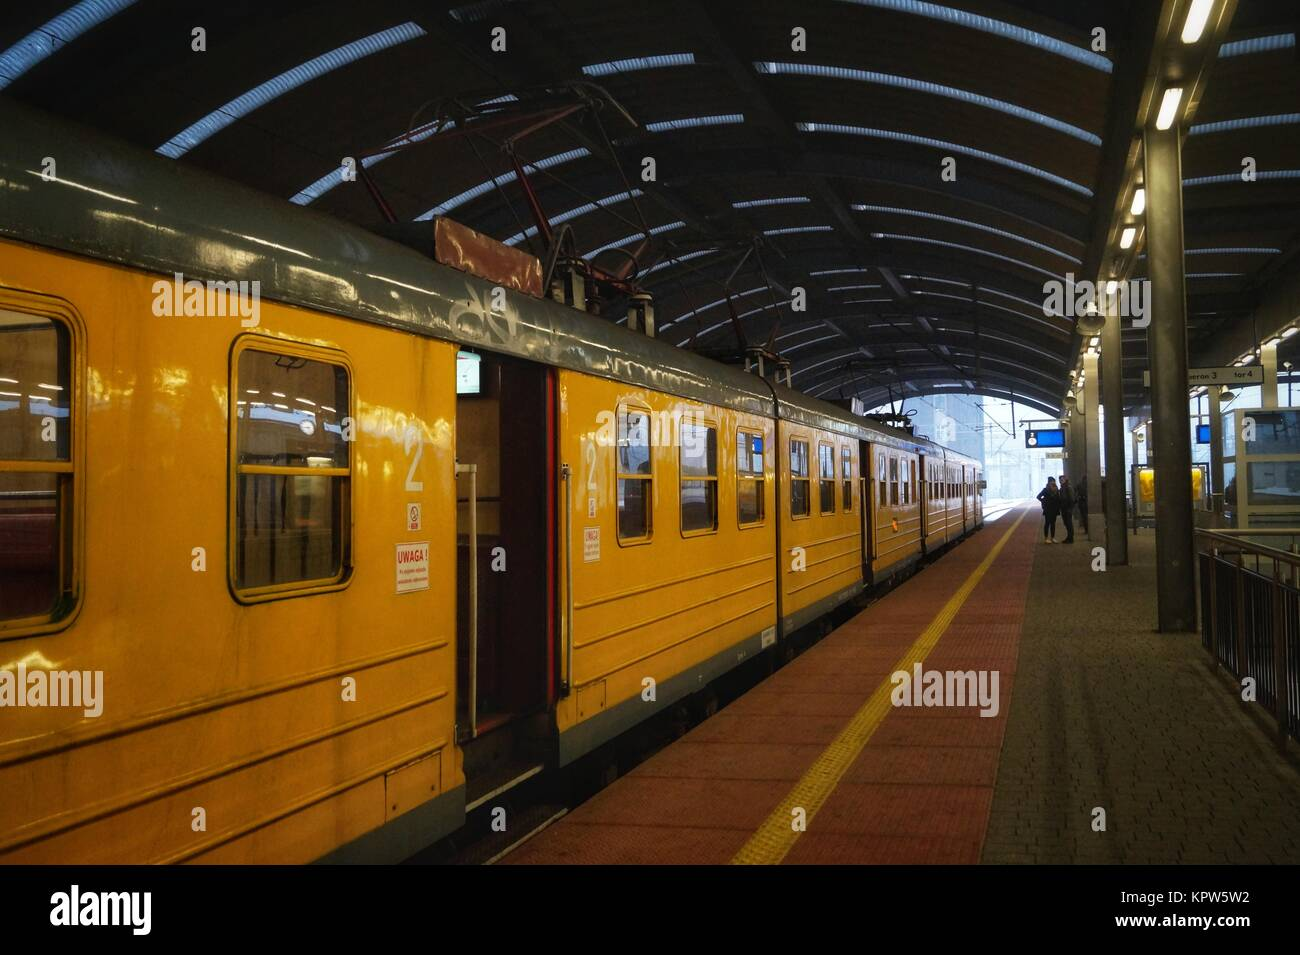 Metal travelling, the Katowice railway station - Stock Image